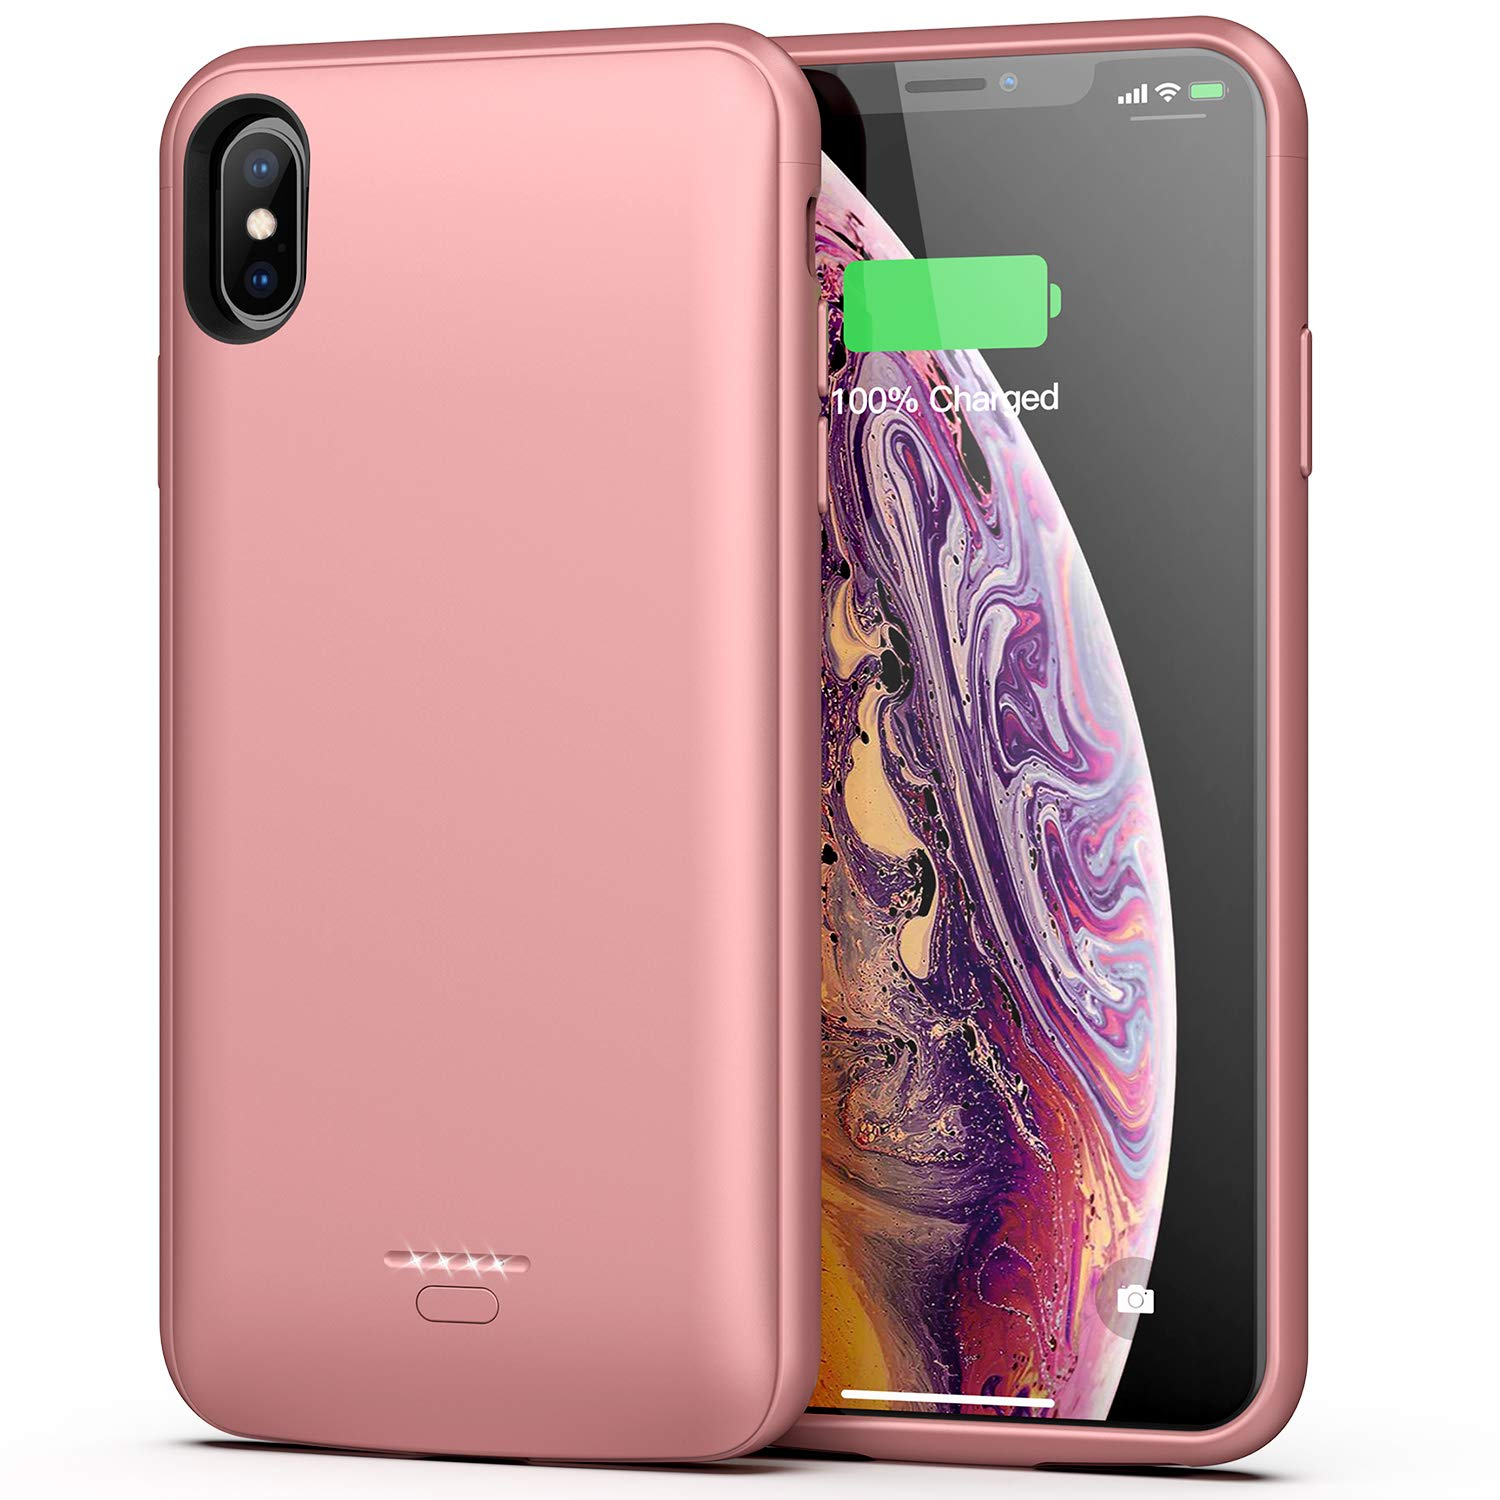 Battery Case for iPhone Xs Max, 5000mAh Portable Protective Charging Case Compatible with iPhone Xs Max (6.5 inch) Rechargeable Extended Battery Charger Case (Rose Gold)